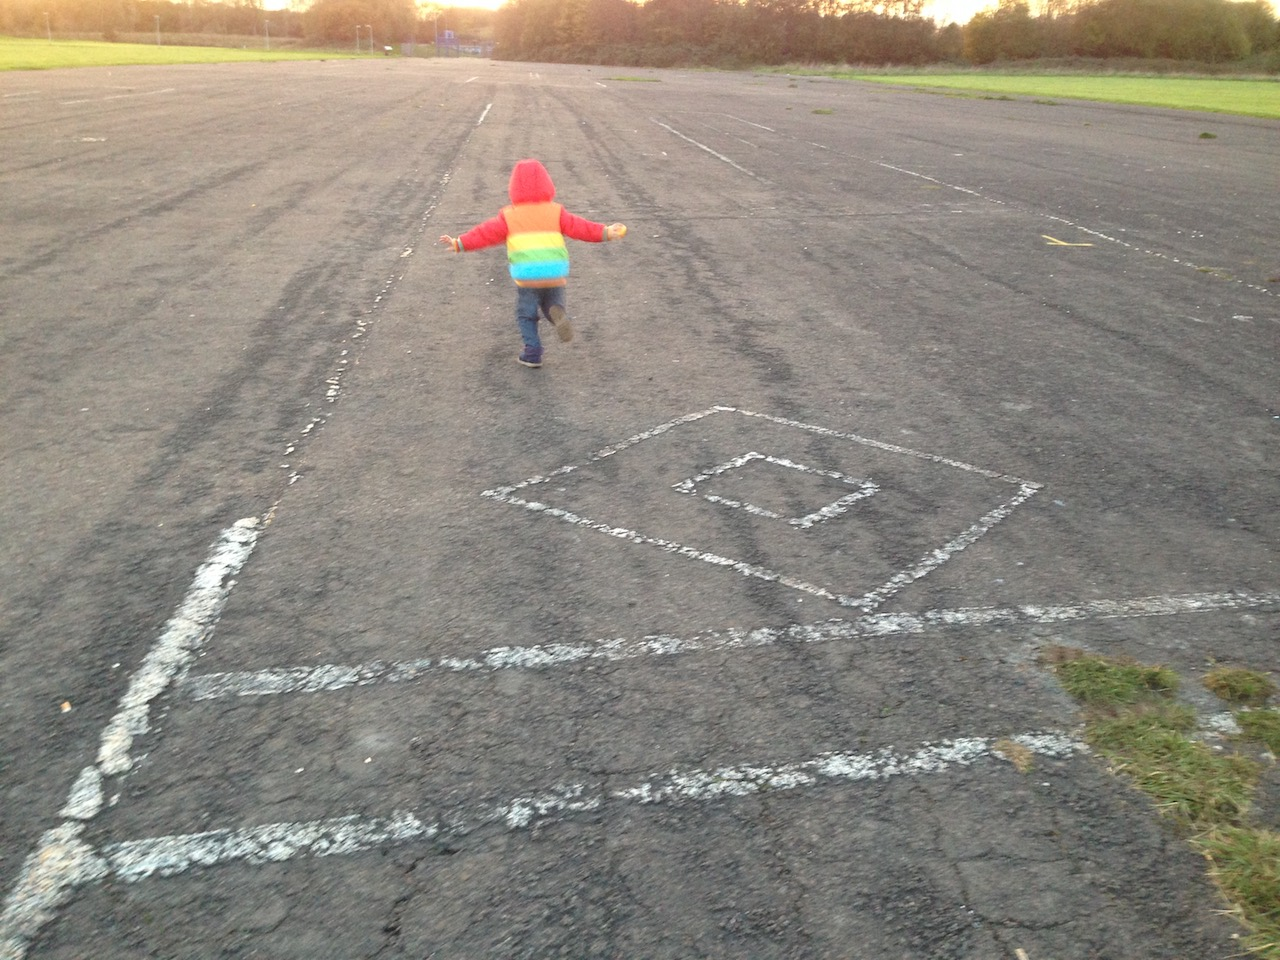 Playing on the former runway